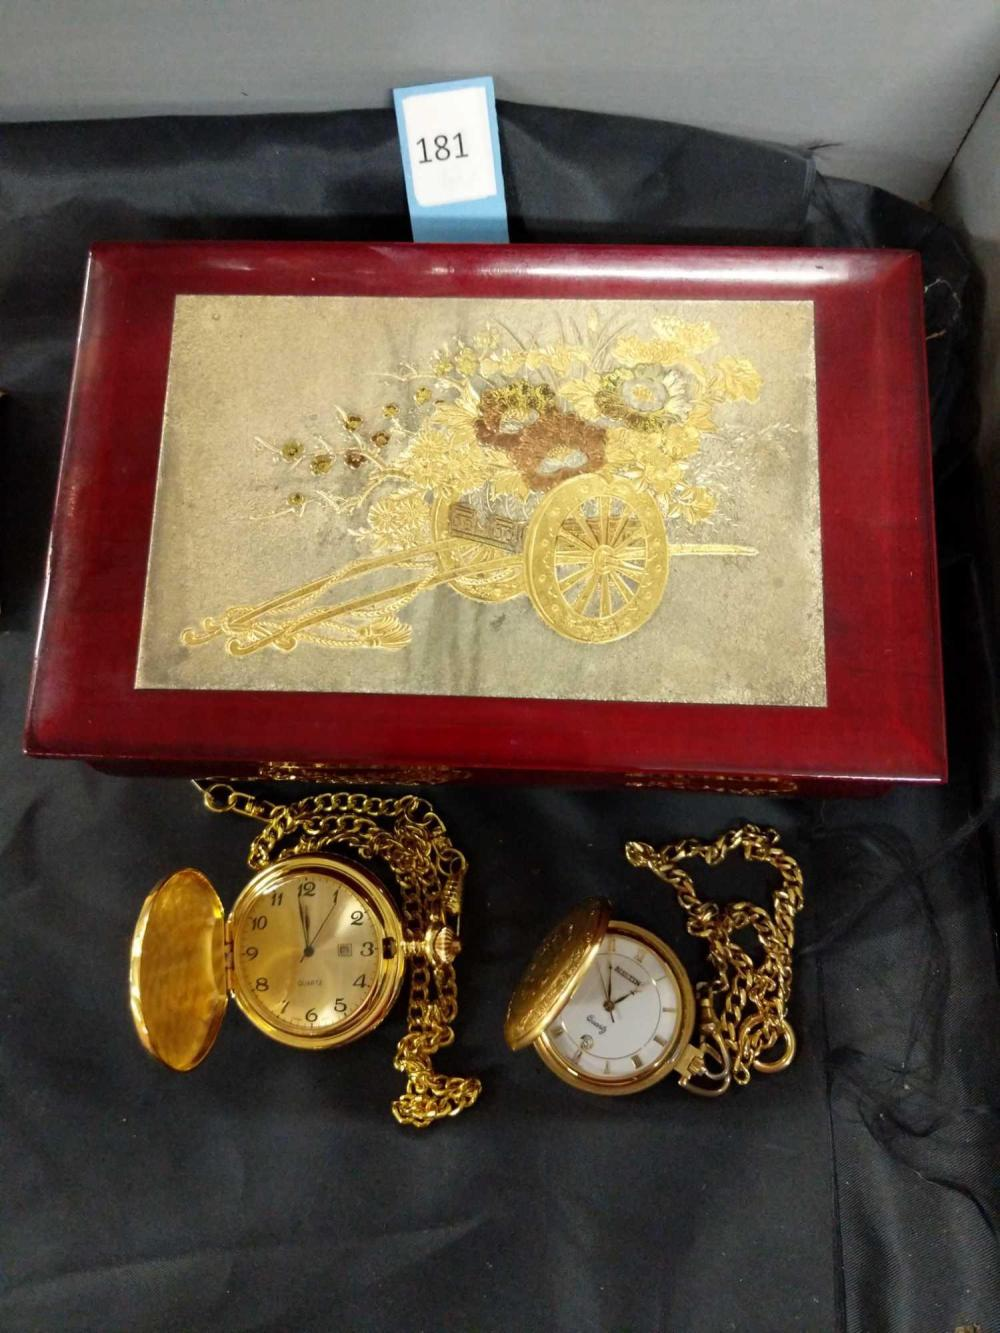 WESTLAND MUSICAL RED LACQUERED VINTAGE JEWELRY BOX & QUARTZ POCKET WATCHES - 3 ITEMS